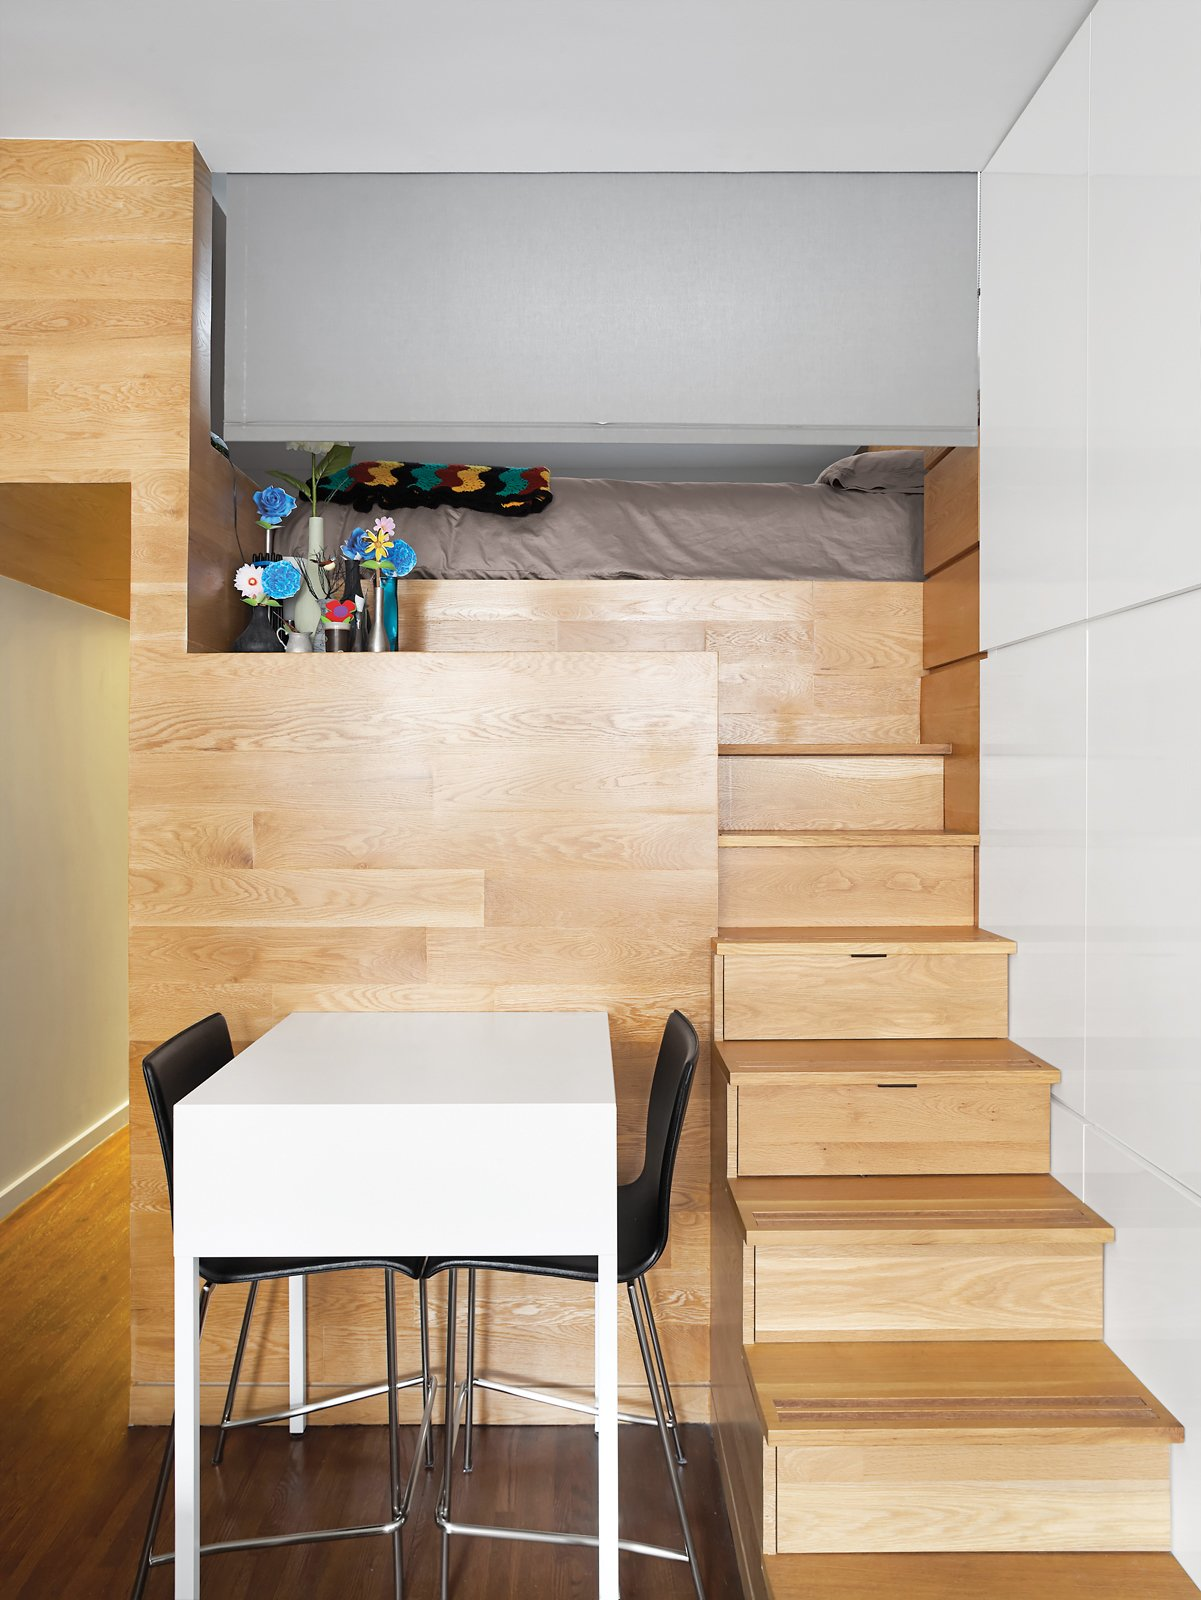 """Pozner credits Borowski with the idea to use a roller shade, purchased at the Shade Store, to close off the sleeping loft. The simple intervention, neither sound- nor lightproof, is sufficient to demarcate one """"room"""" from another. Tagged: Storage Room and Under Stairs Storage Type.  Photo 12 of 12 in The Manhattan Transformation"""